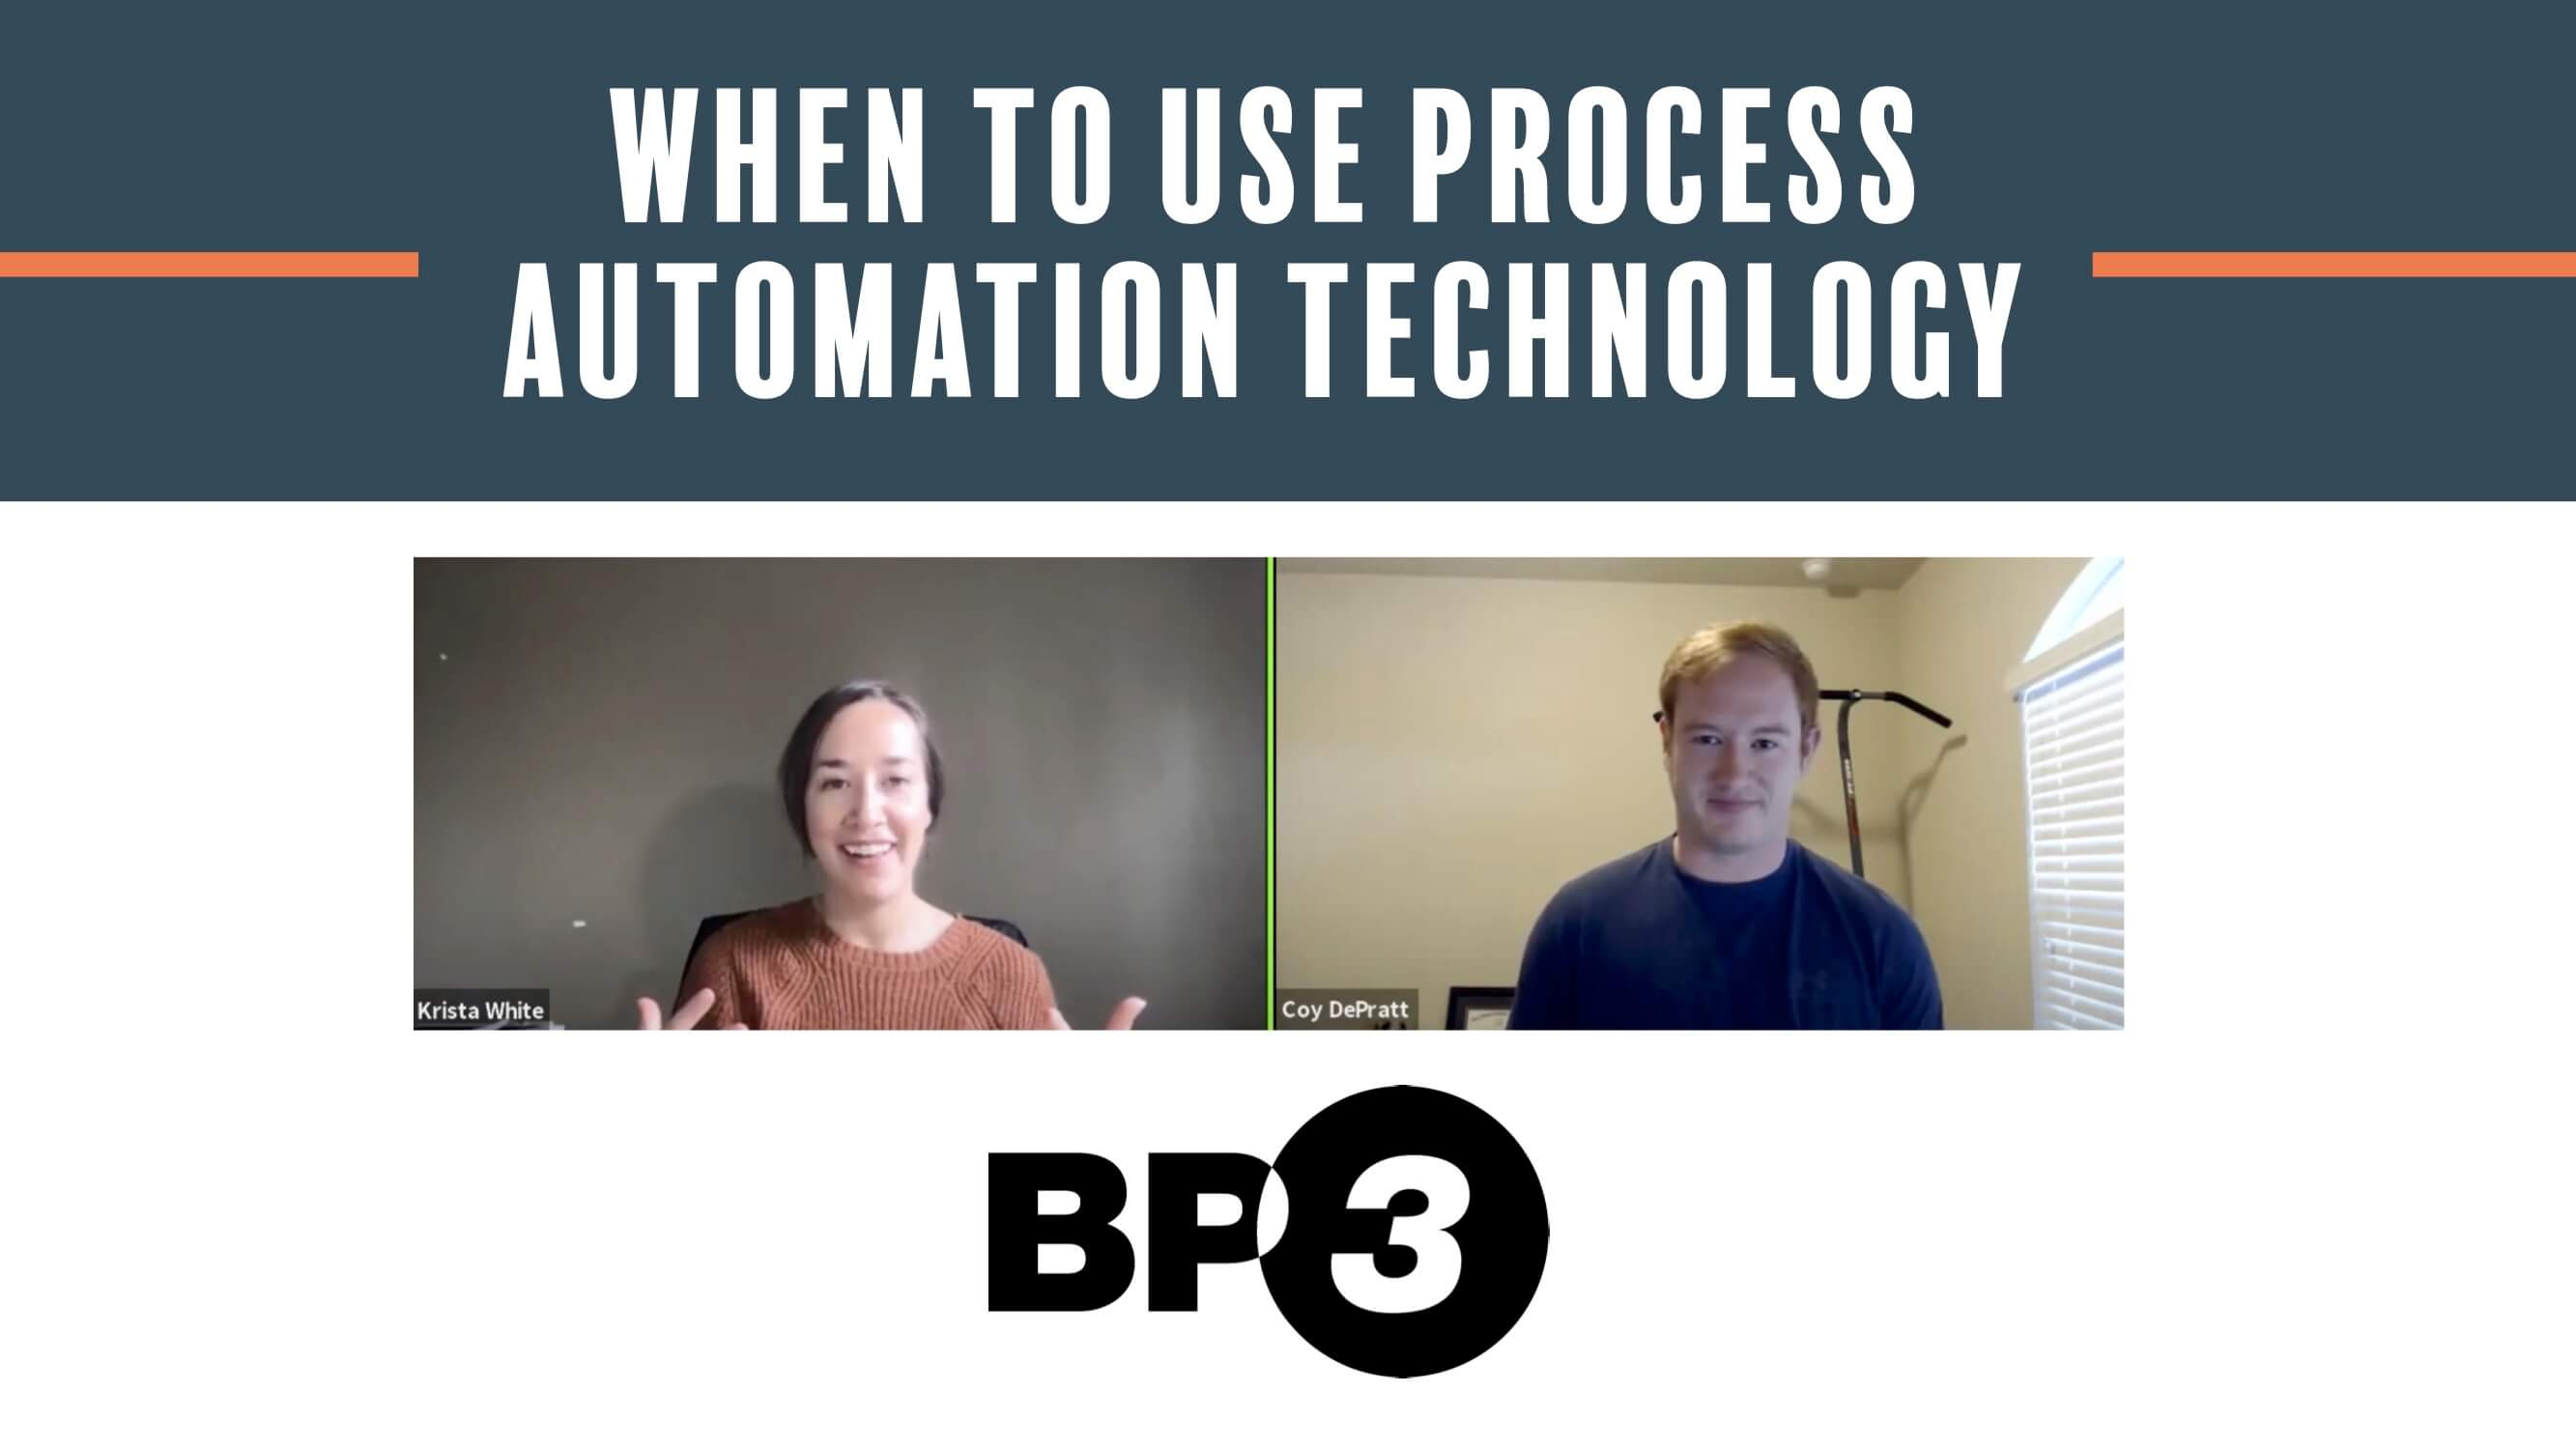 When to use Process Automation Technology